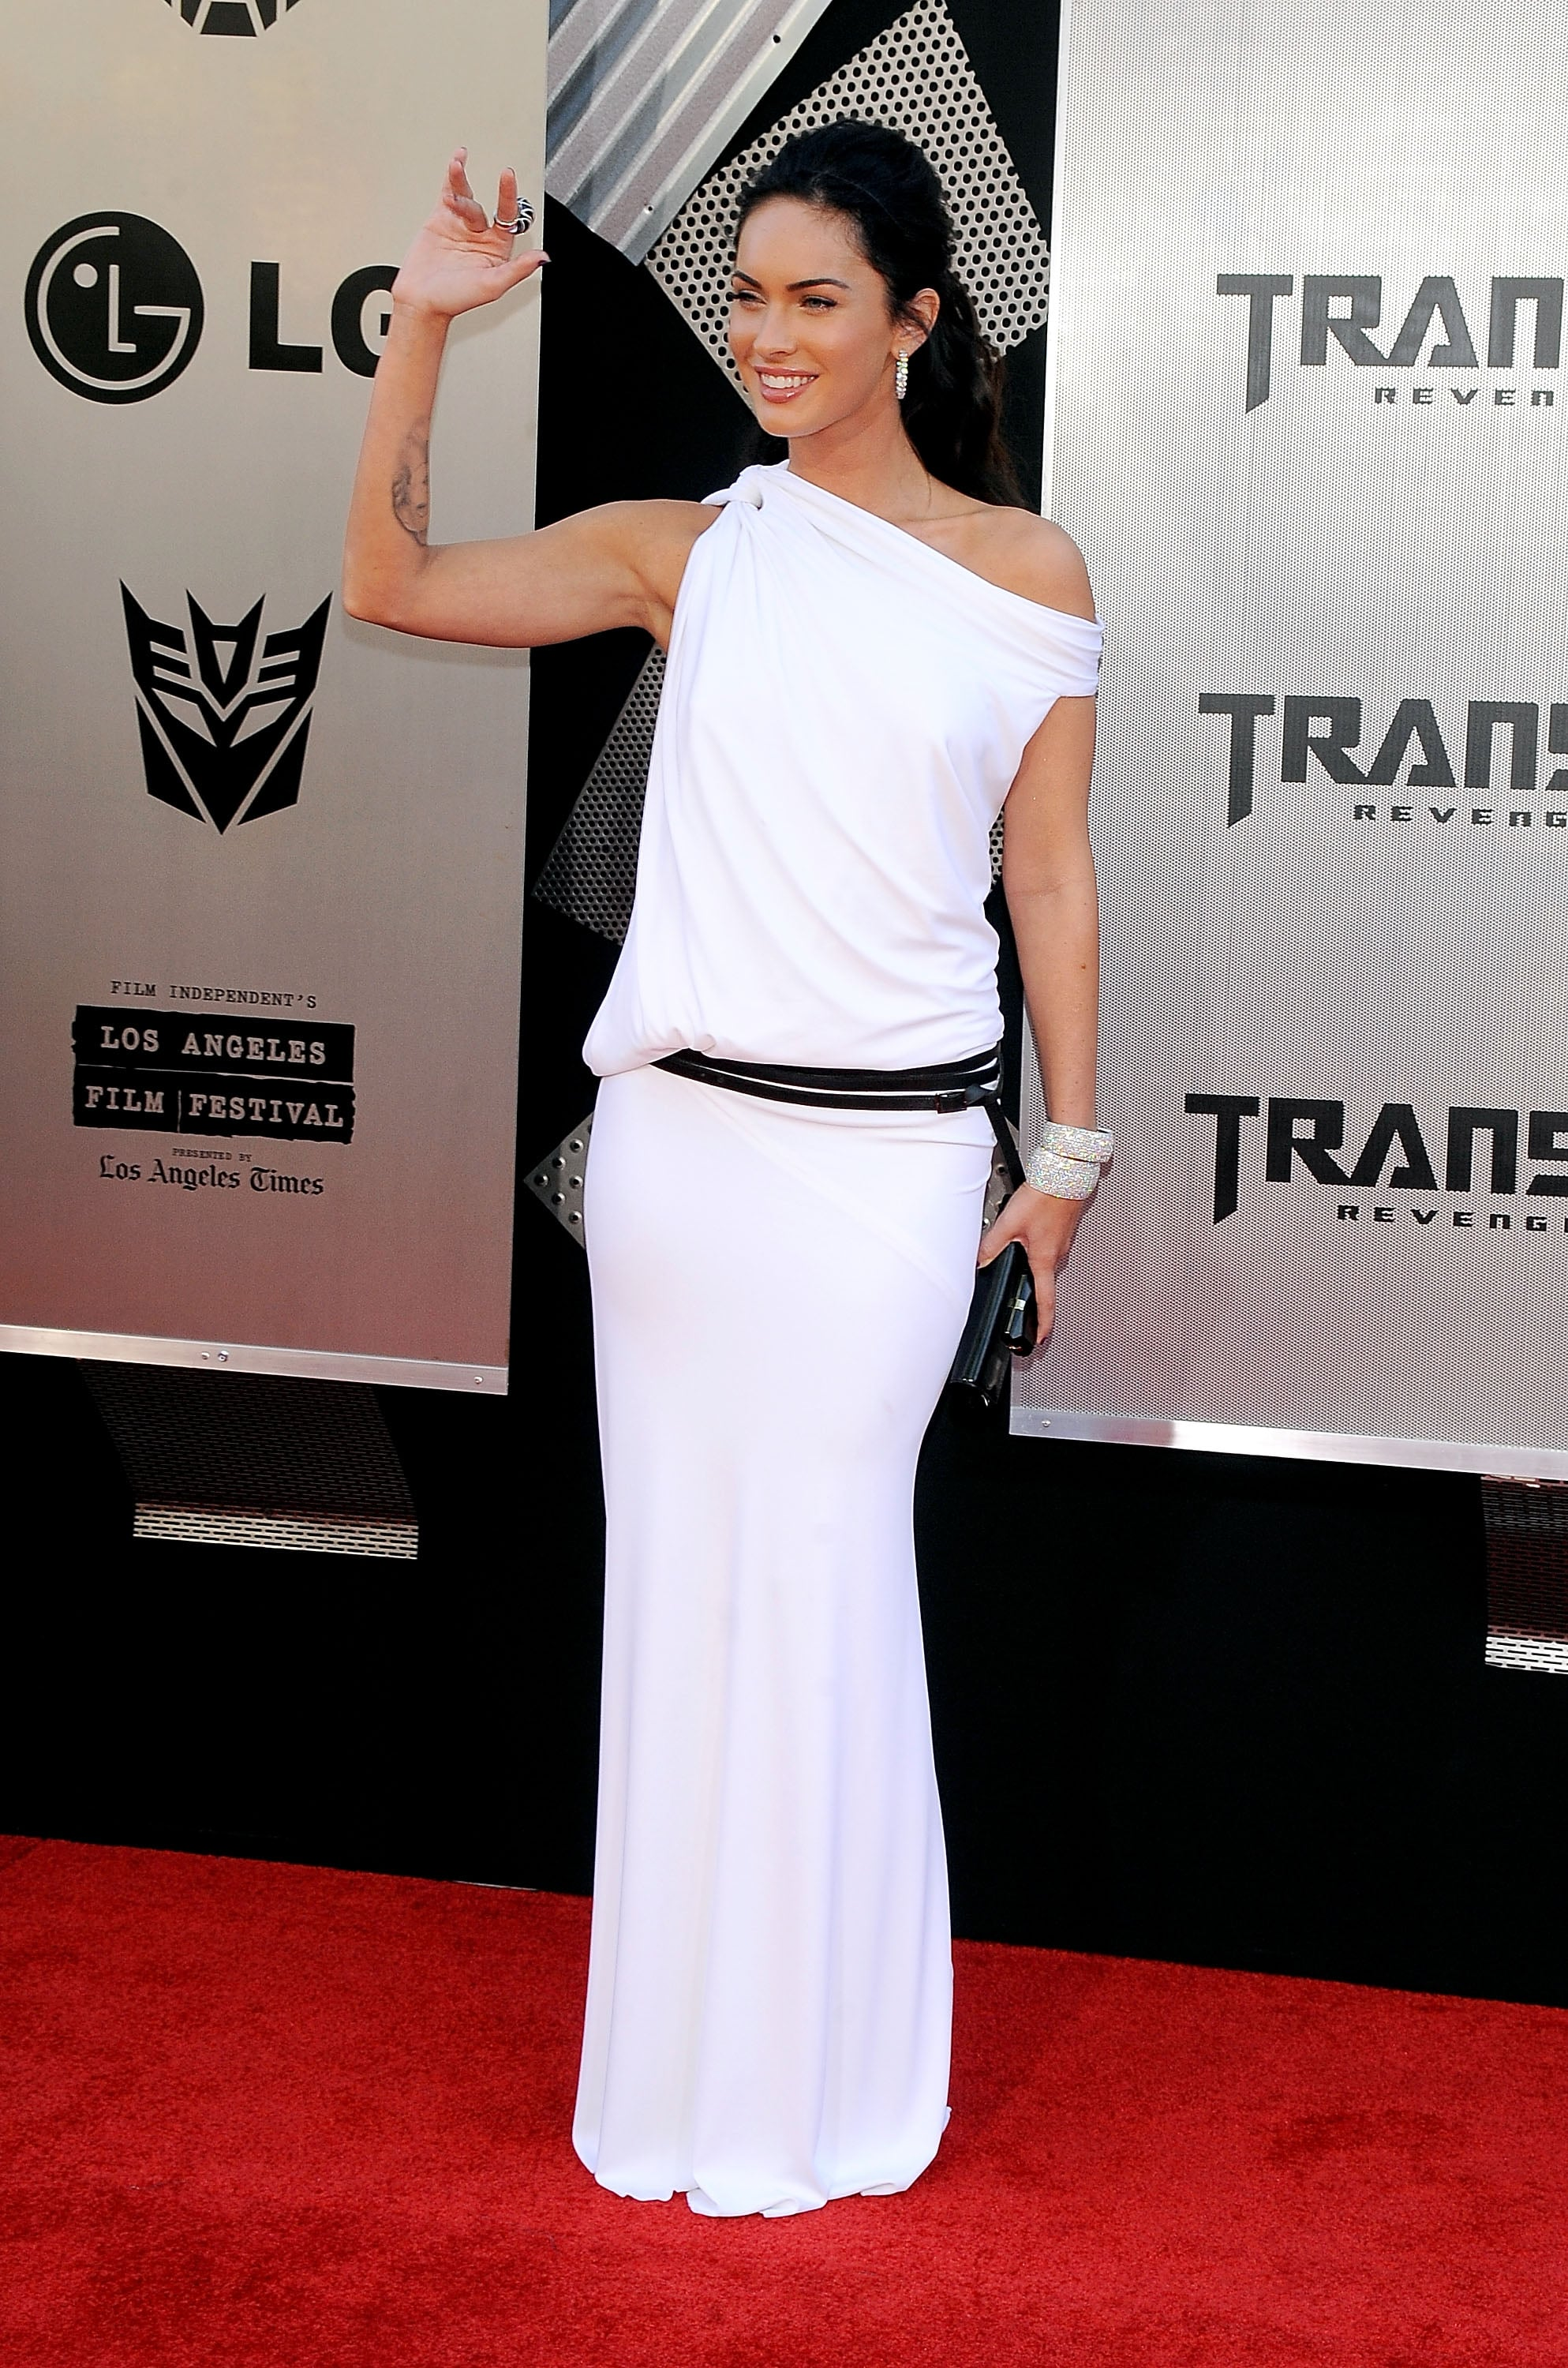 Red Carpet Photos of Transformers 2 Premiere in LA With ...